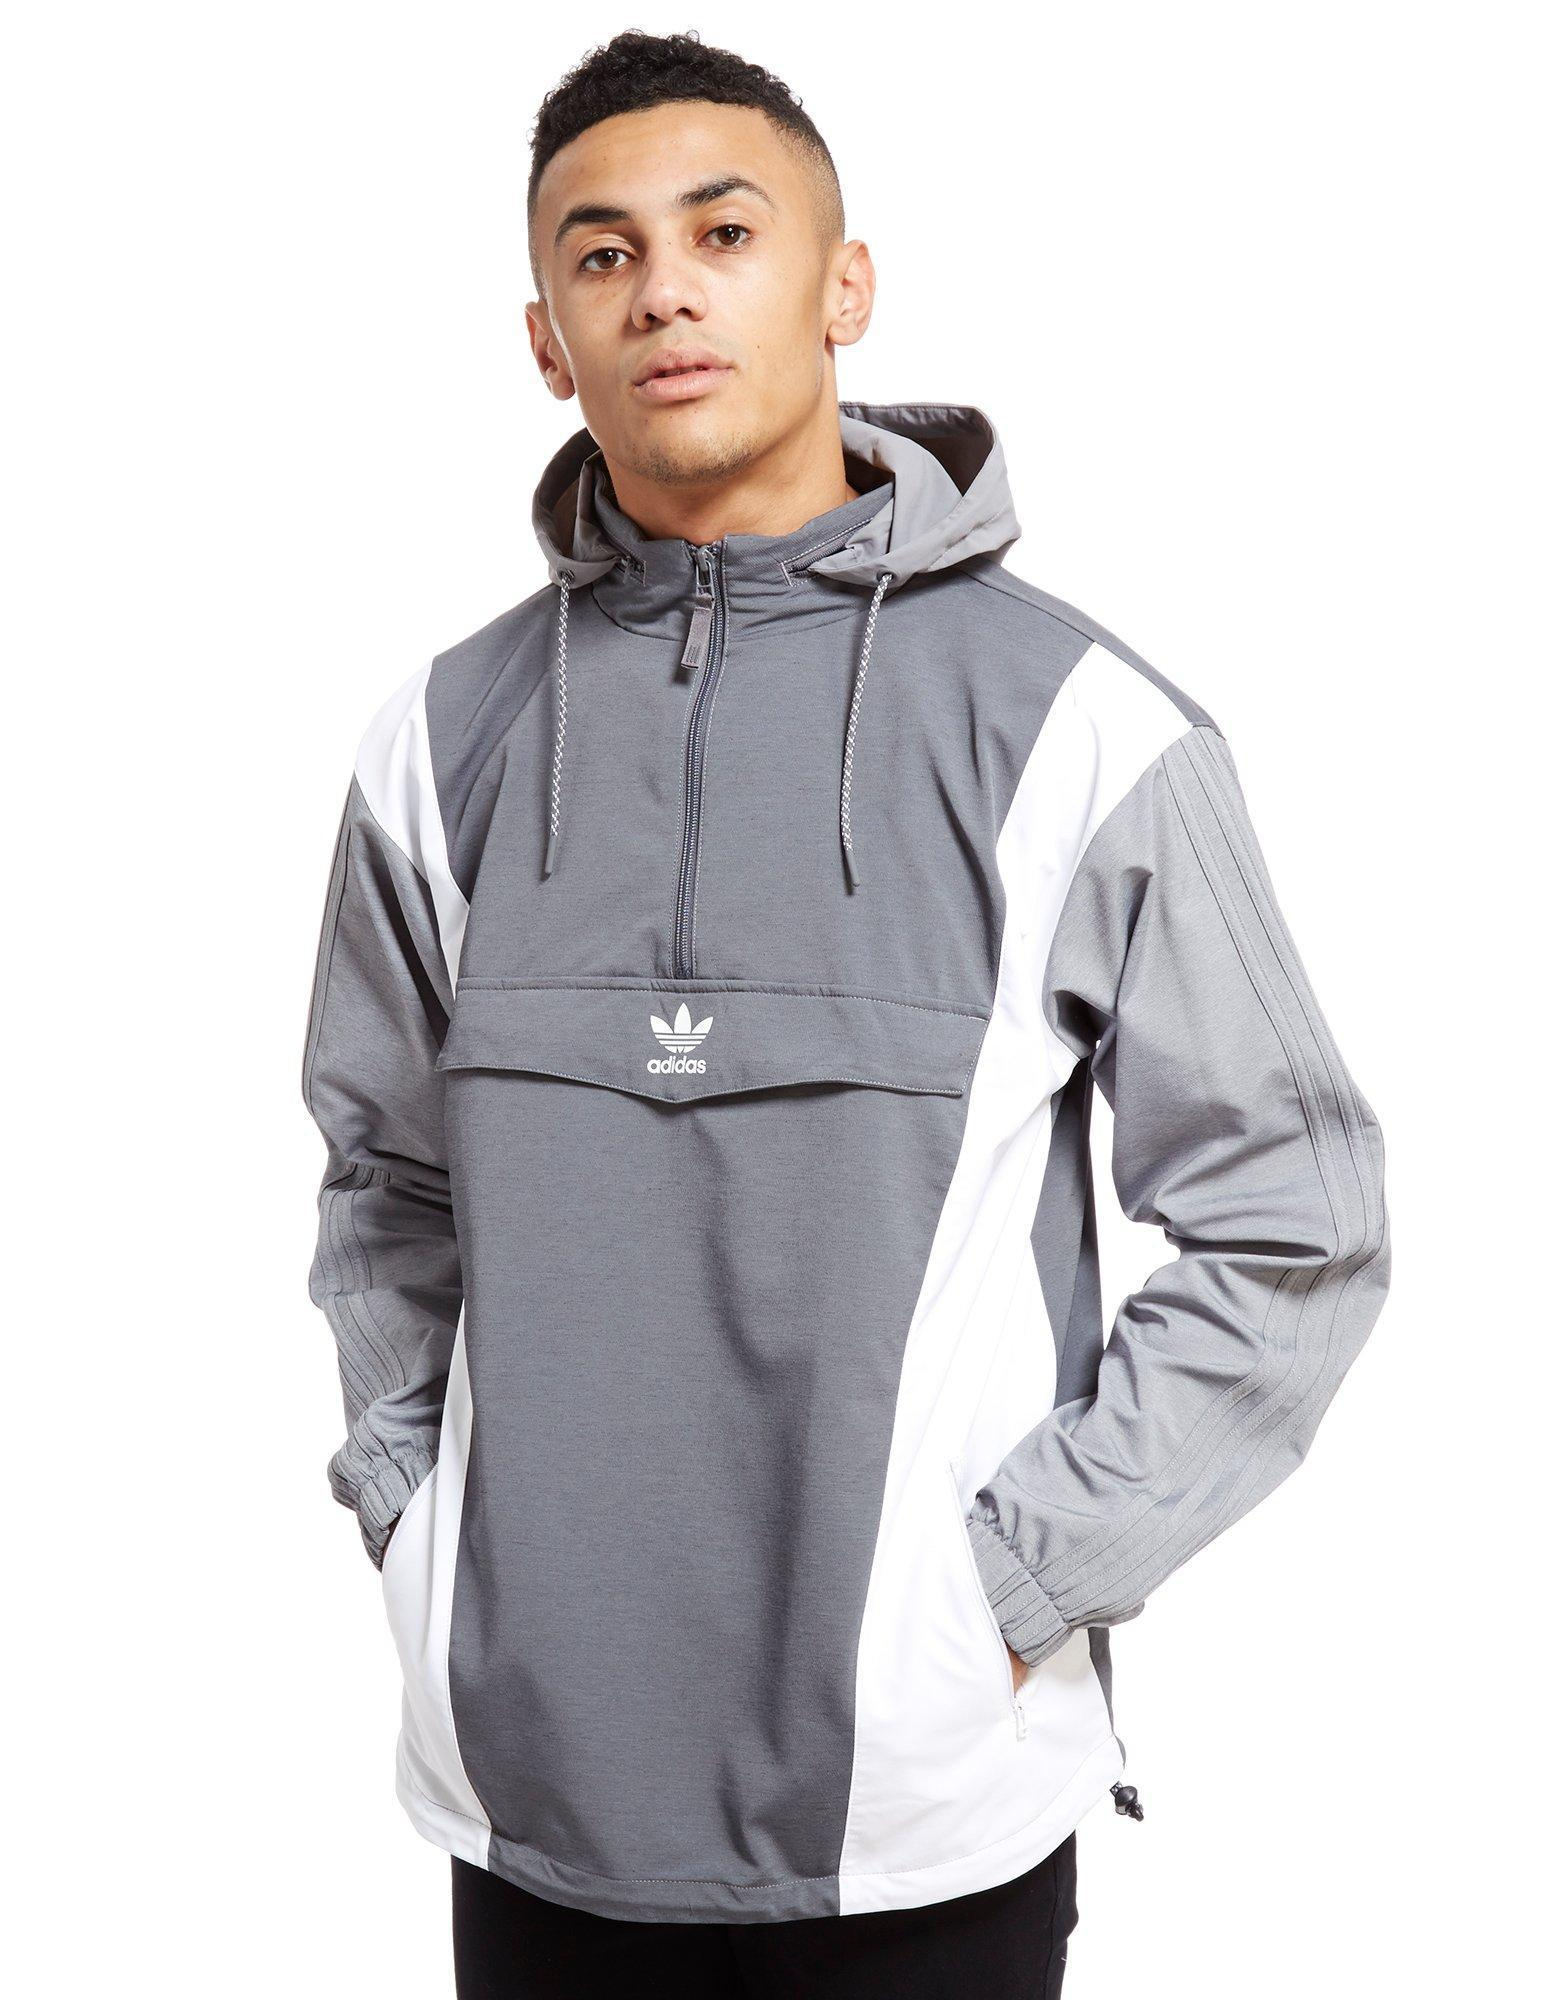 86d95cbb28bb adidas Originals Nova Half Zip Jacket in Gray for Men - Lyst